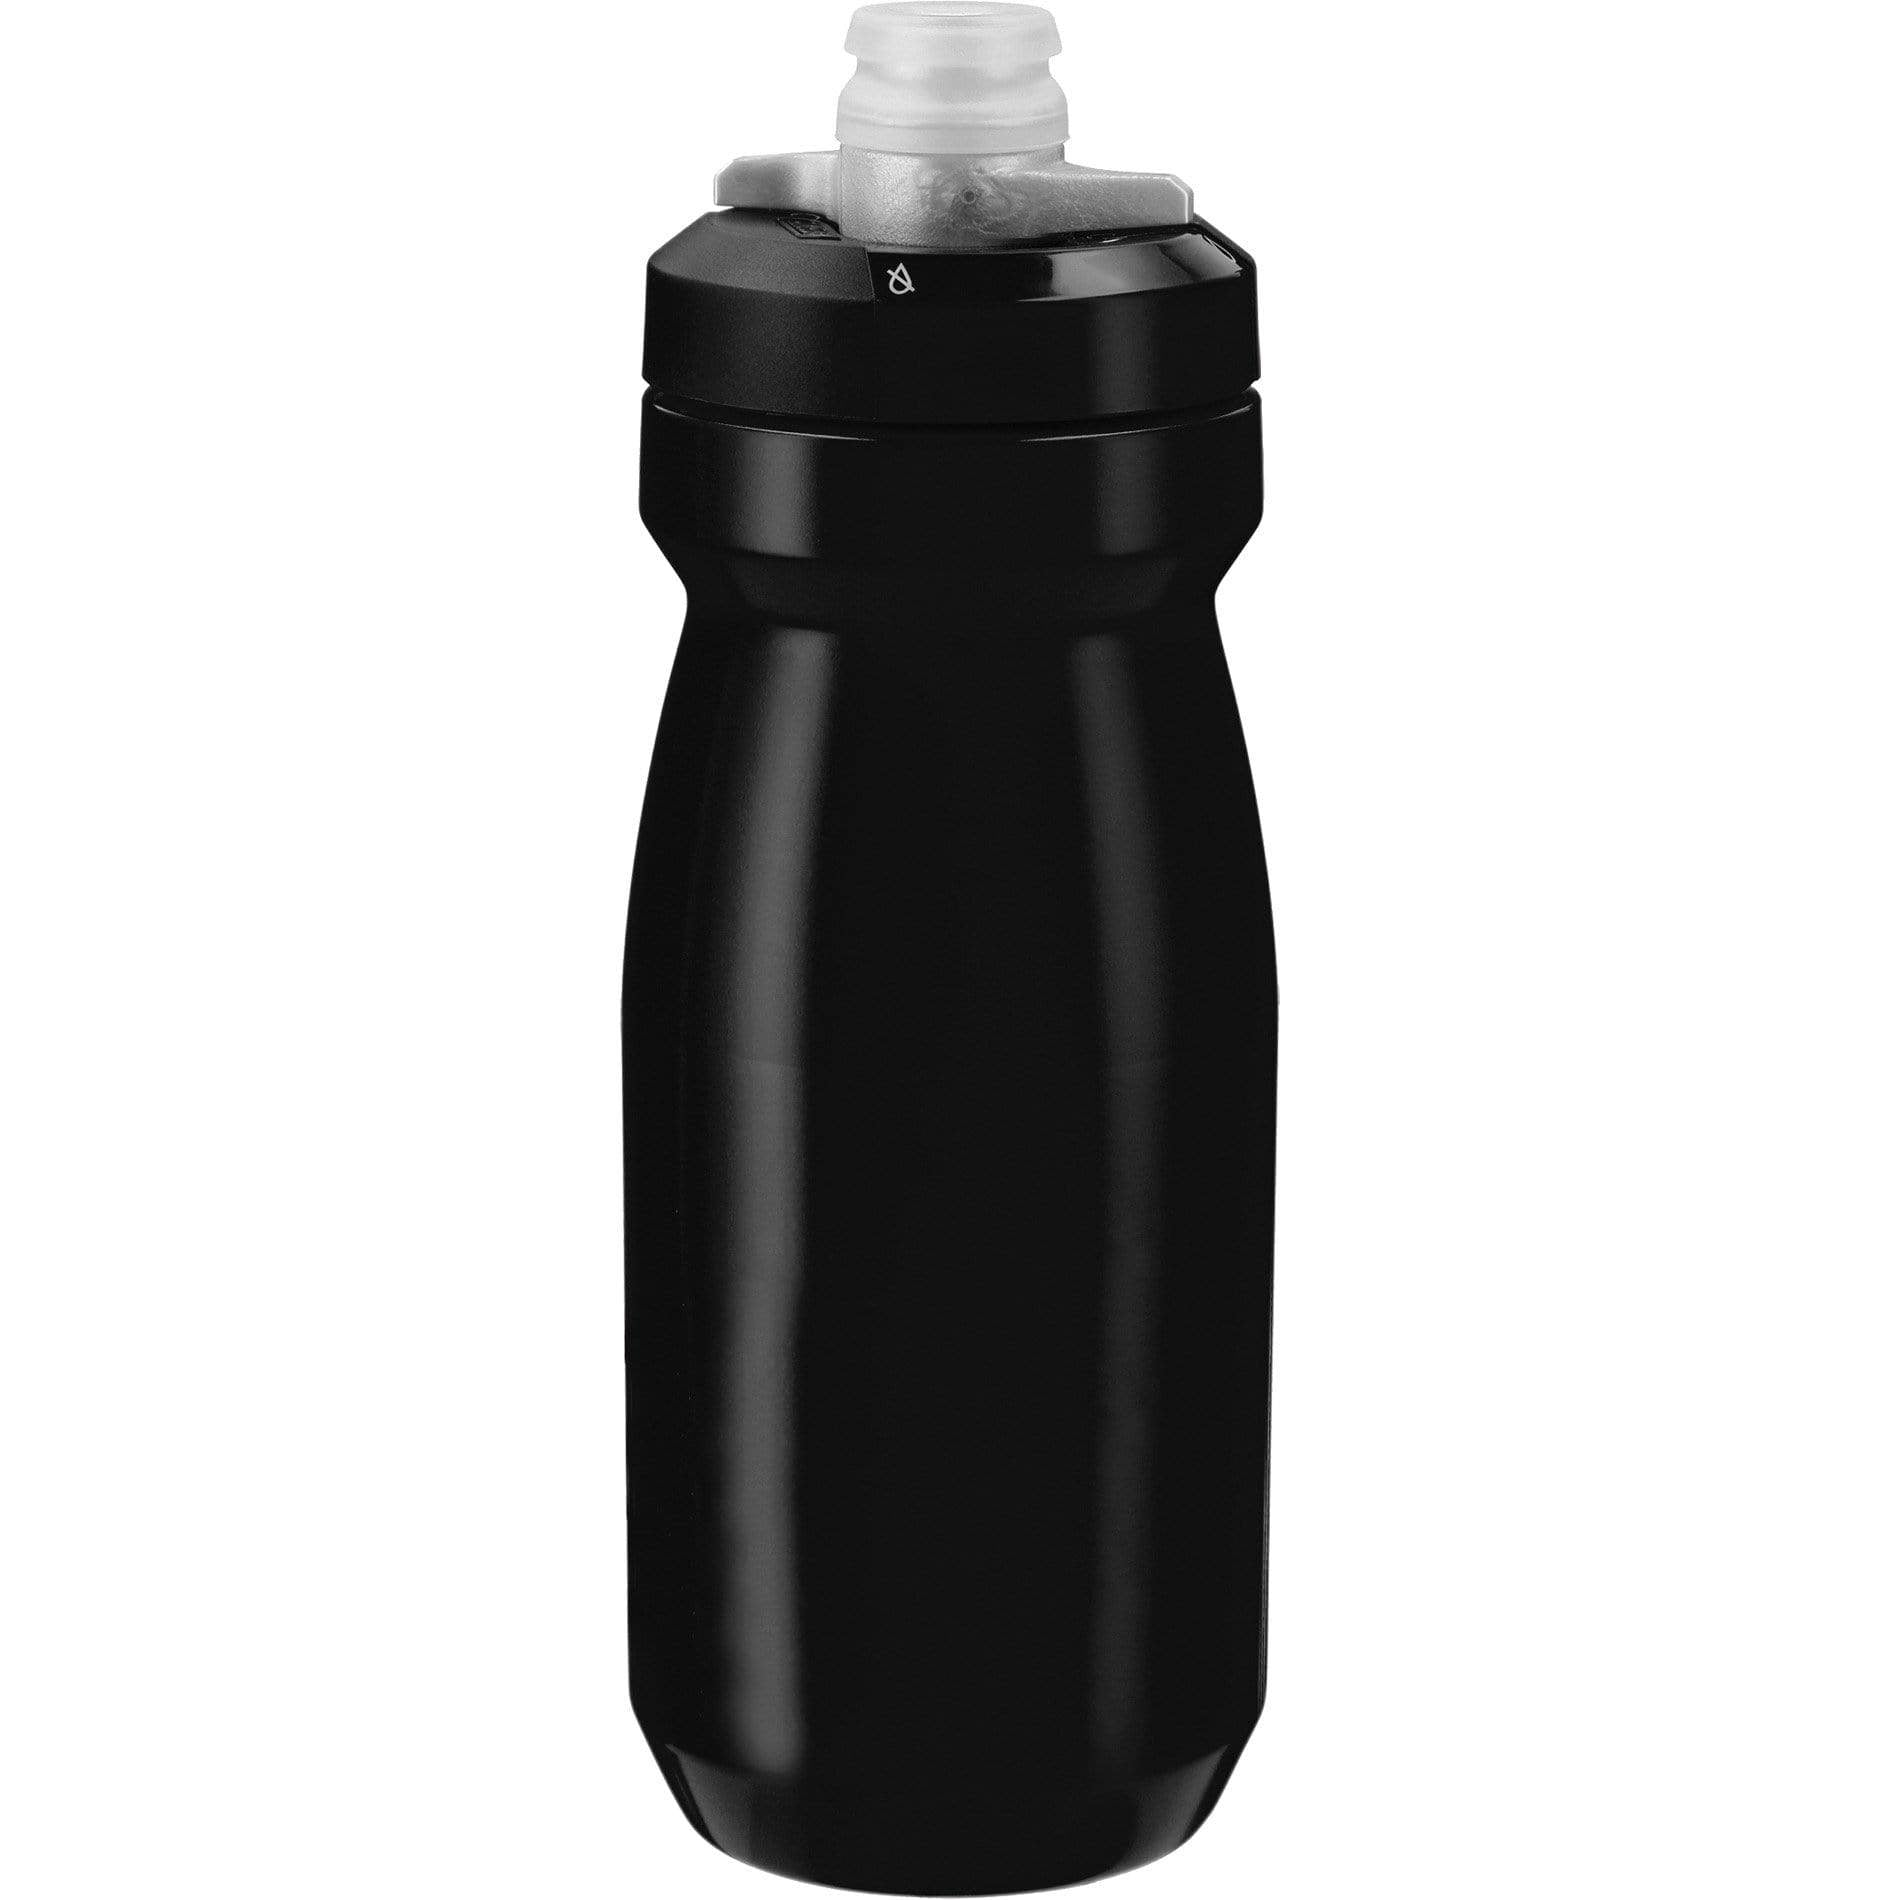 CamelBak - 48 unit minimum Accessories One size / Black CamelBak - Podium® 3.0 21oz